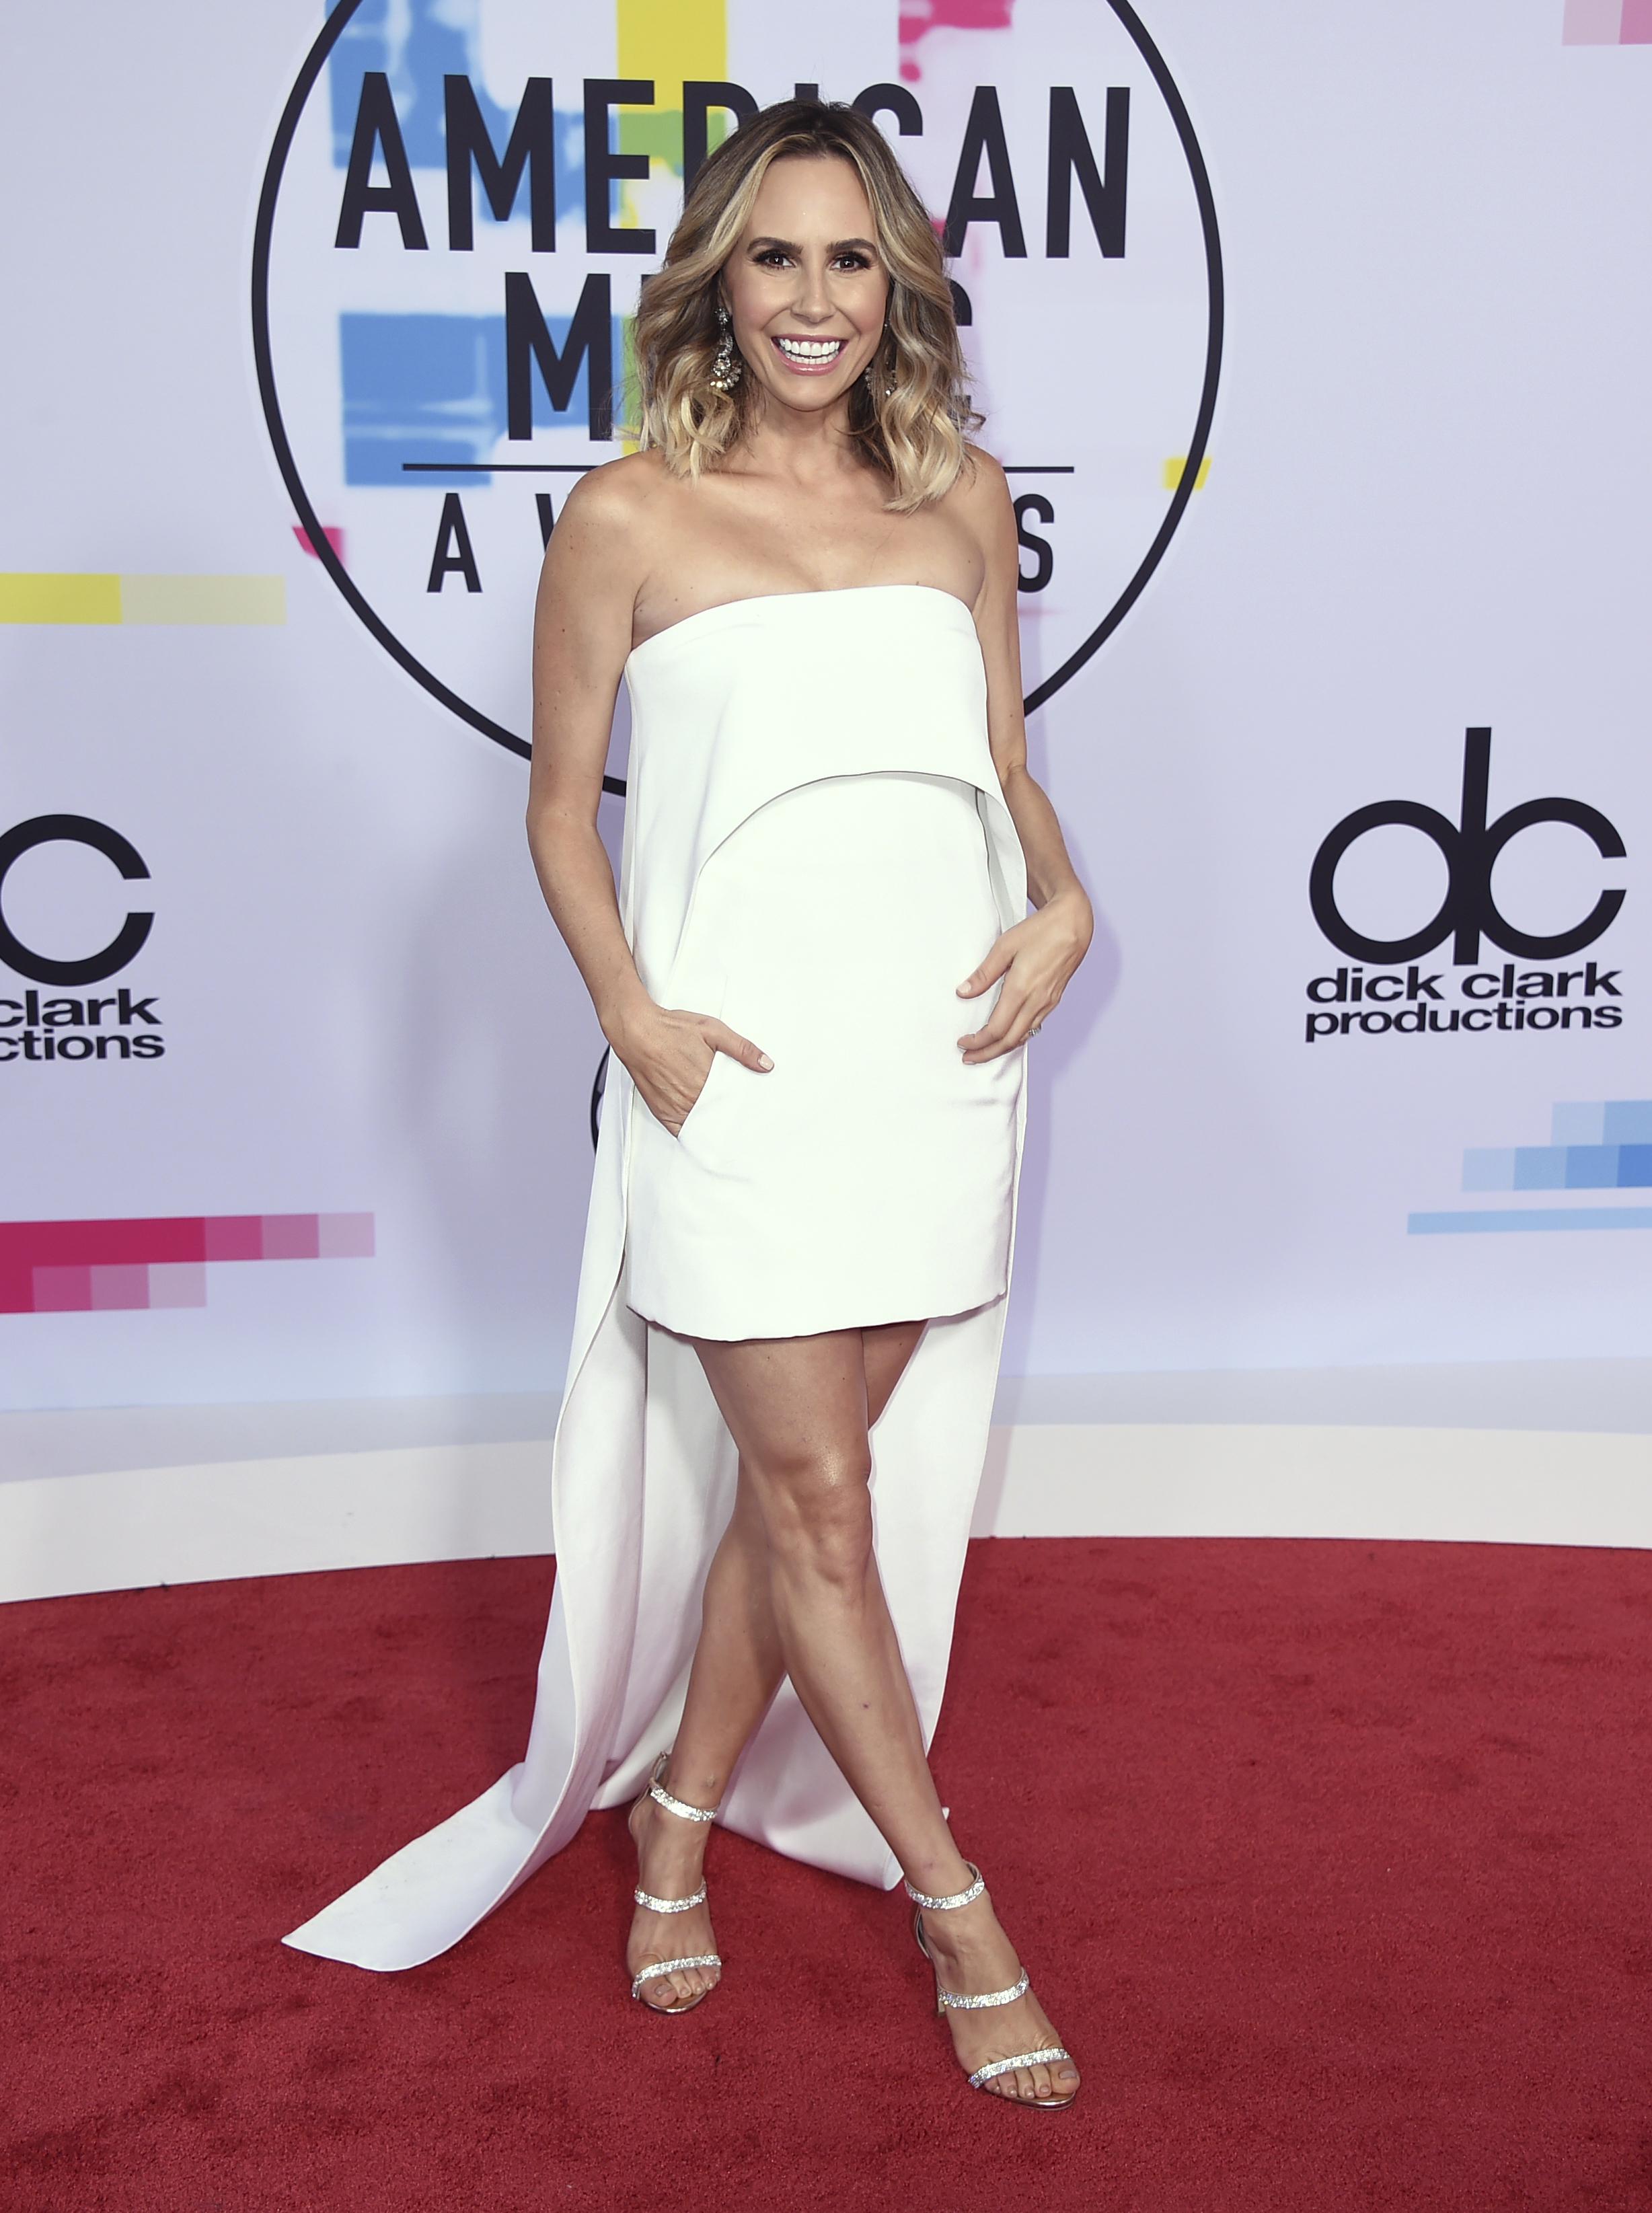 <div class='meta'><div class='origin-logo' data-origin='none'></div><span class='caption-text' data-credit='Jordan Strauss/Invision/AP'>Keltie Knight arrives at the American Music Awards at the Microsoft Theater on Sunday, Nov. 19, 2017, in Los Angeles.</span></div>